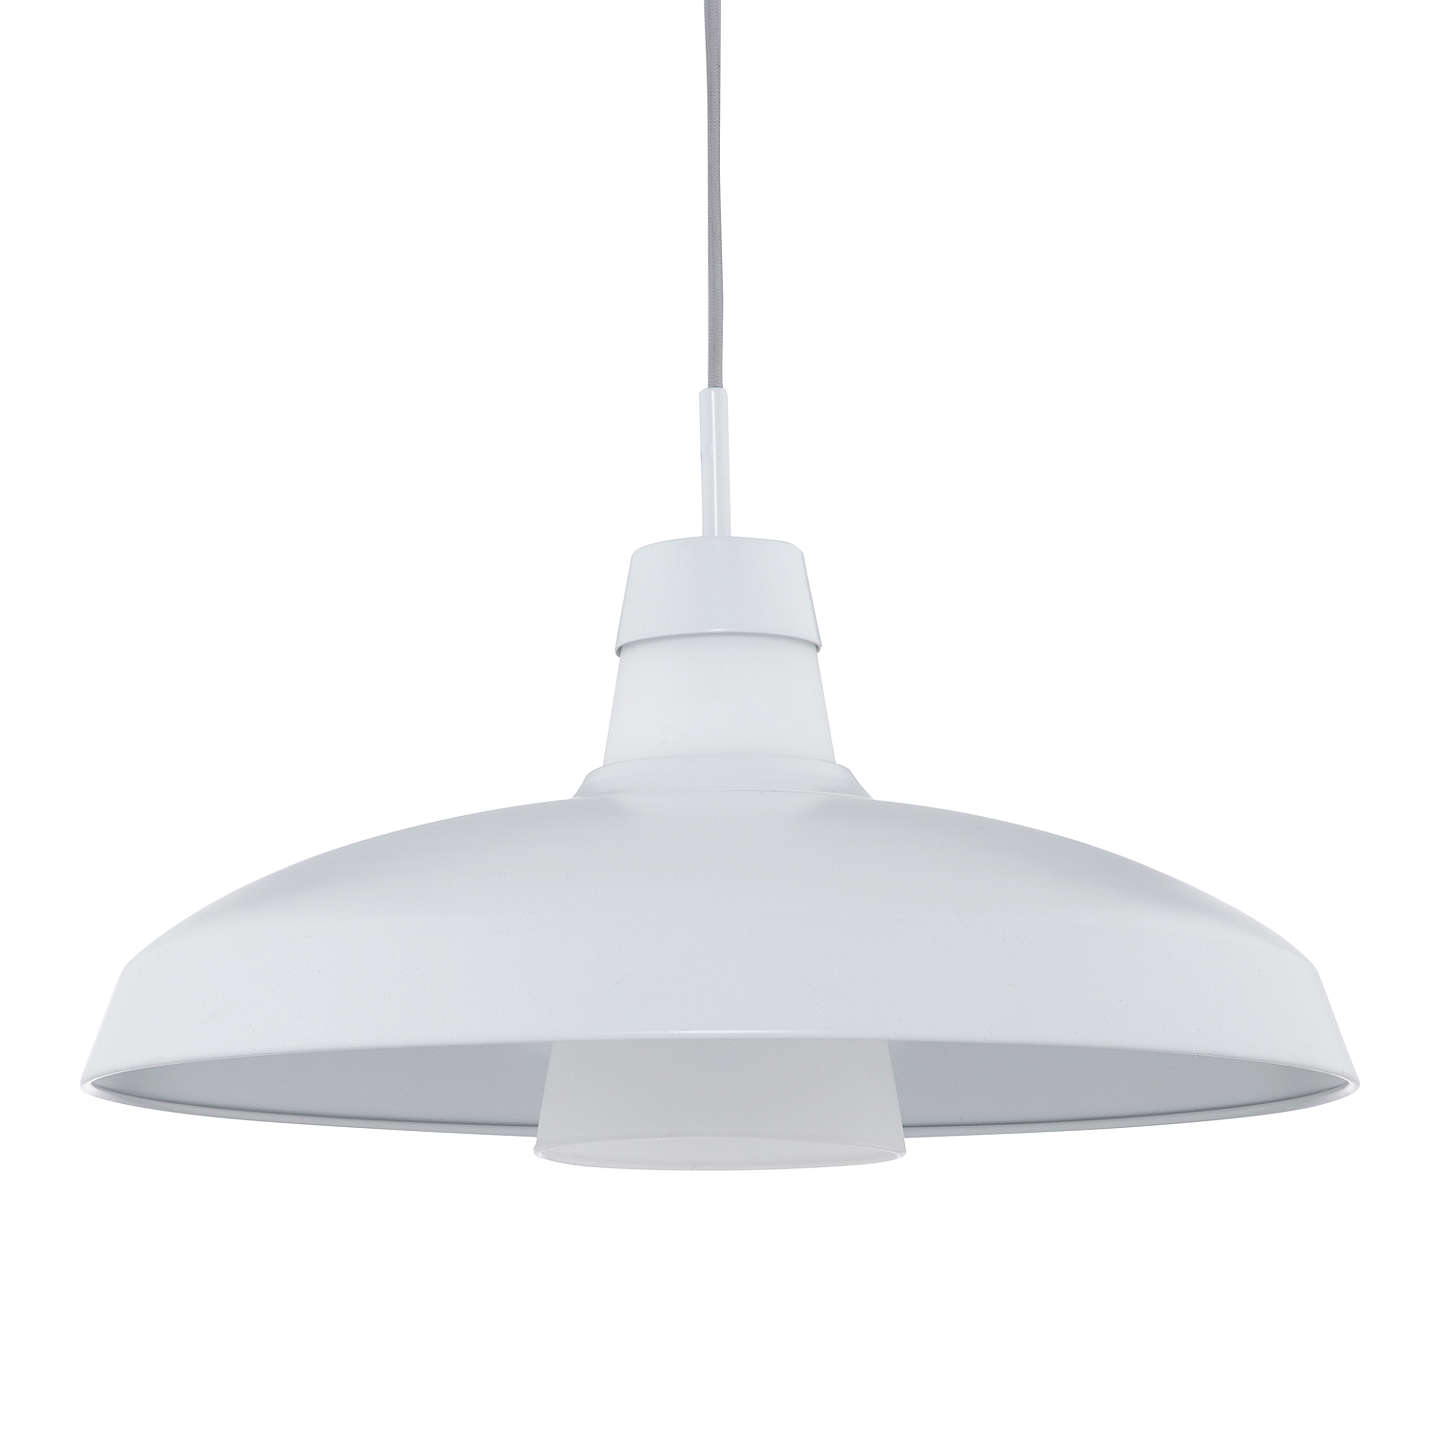 body calais pendant smoked light ceiling dover glass lighting leyton